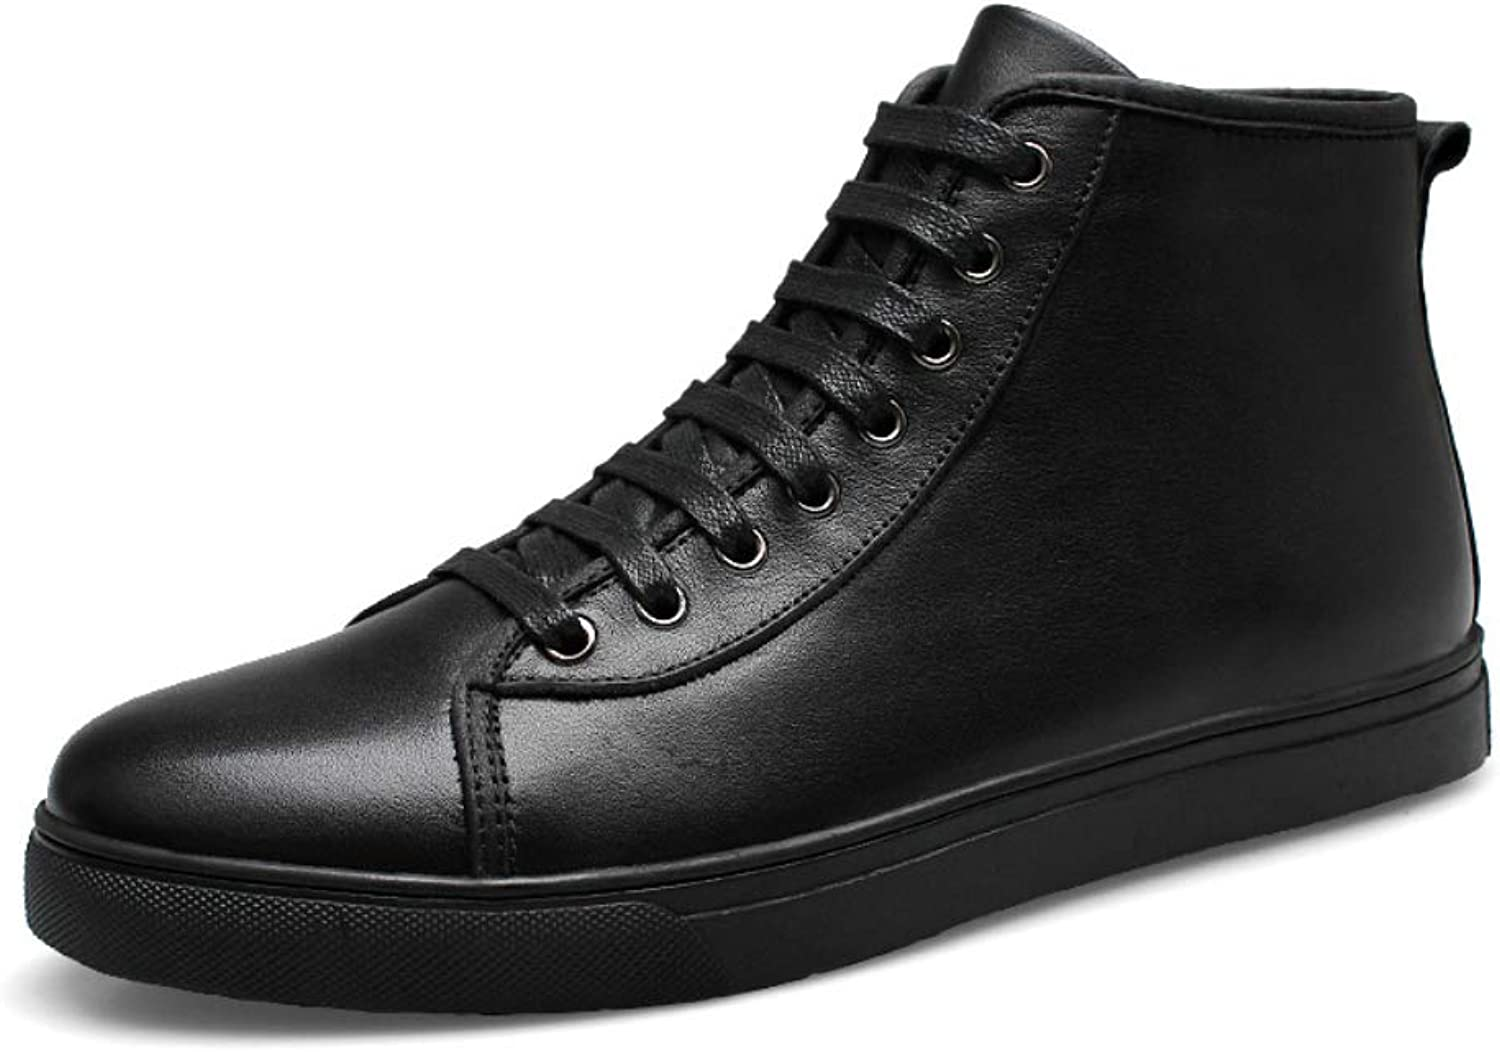 Men's Leather Oxford shoes Fashion Boots Casual Sneakers